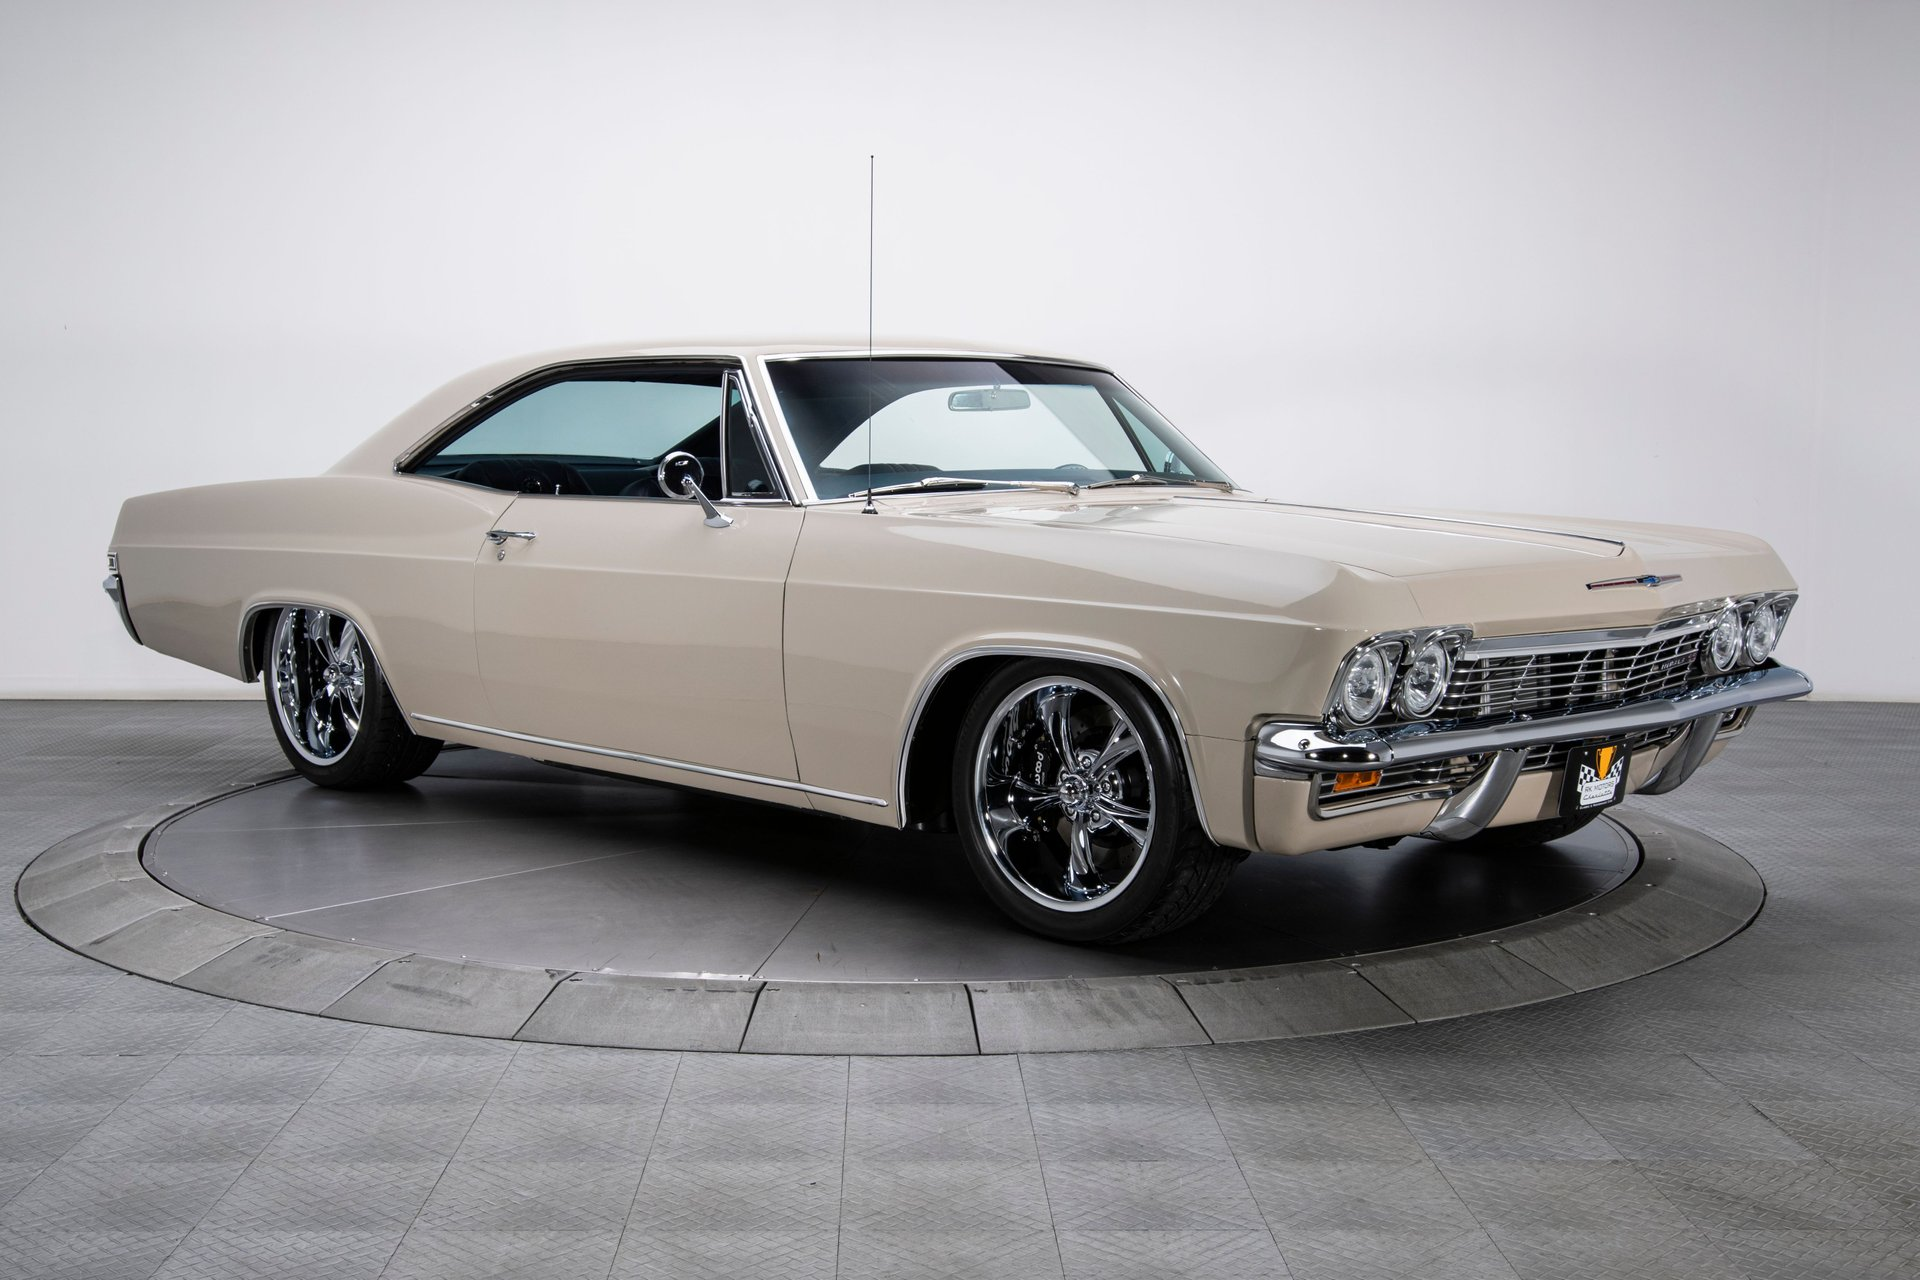 This 1965 Chevy Impala Ss Combines Restomod Beauty With